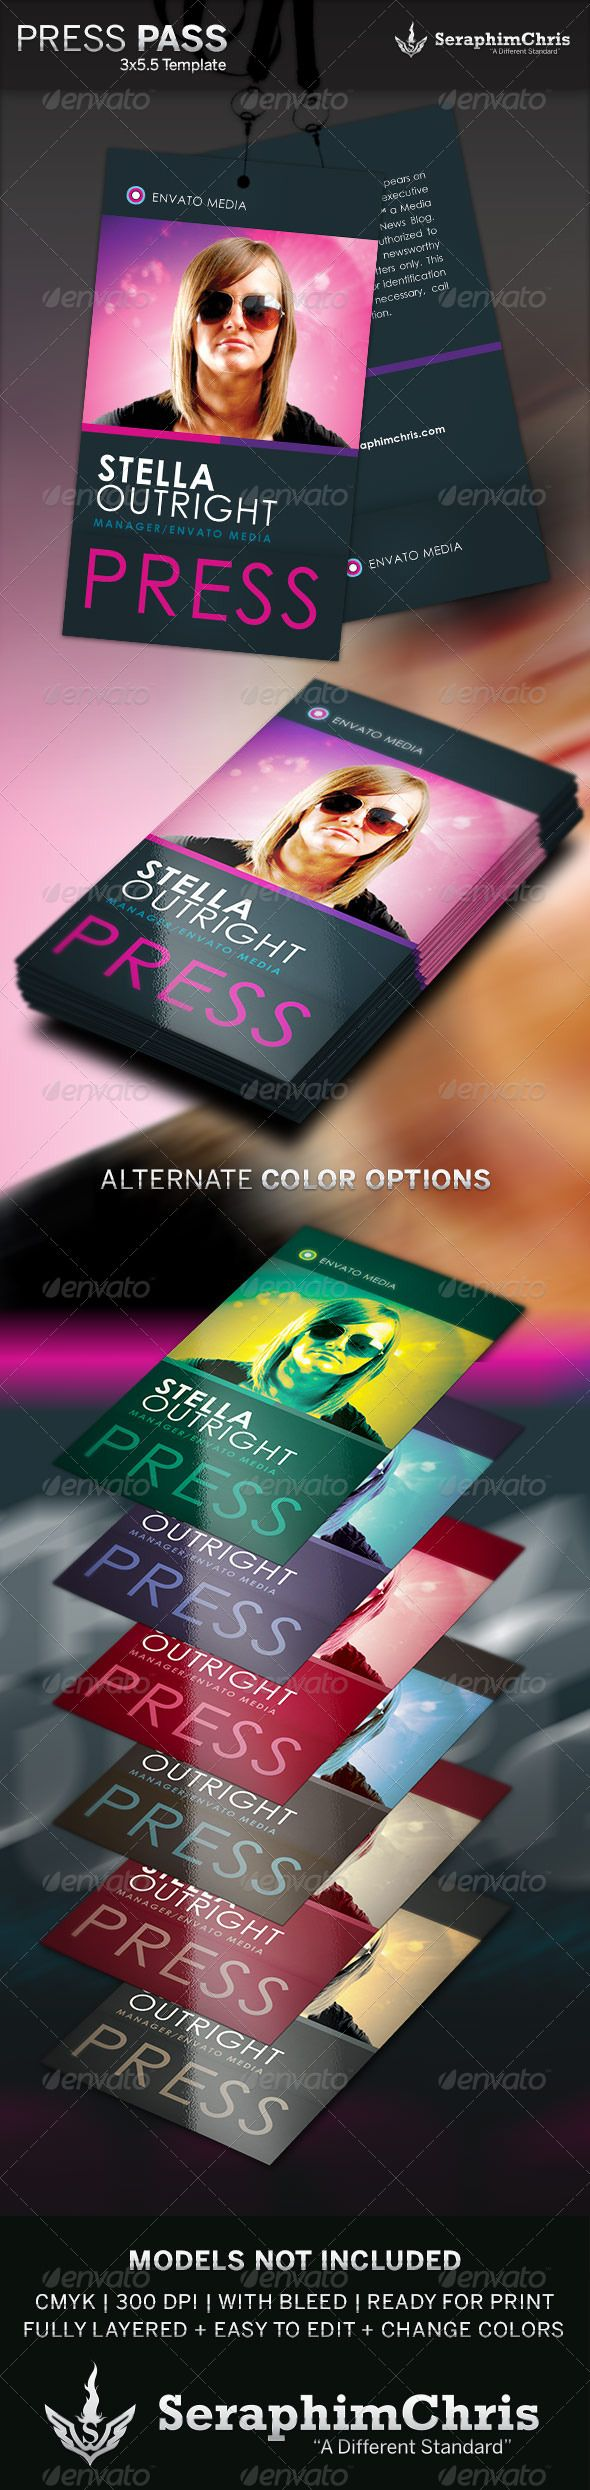 Press Pass 4 Template | Pinterest | Template, Yearbooks and Print ...